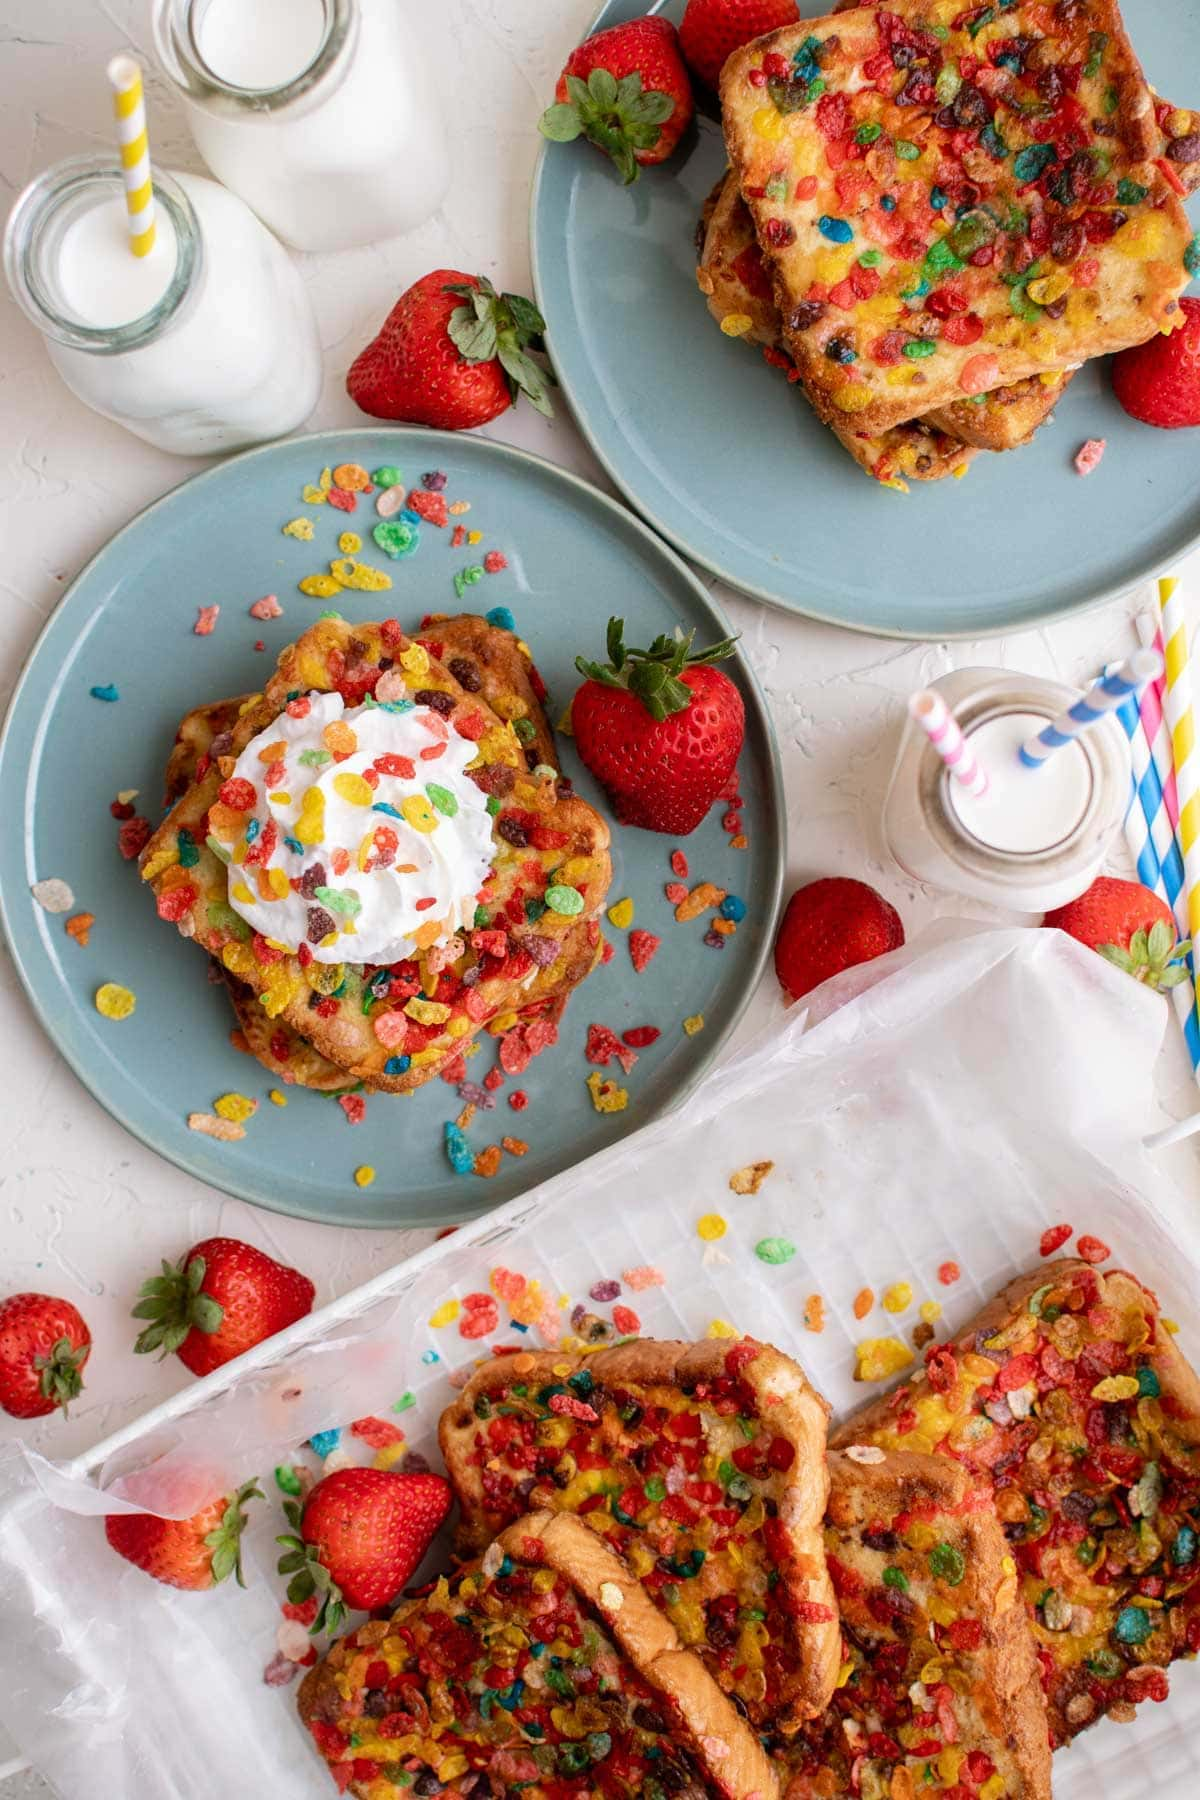 blue plates, glasses of milk, fruity pebbles, whipped cream, strawberries